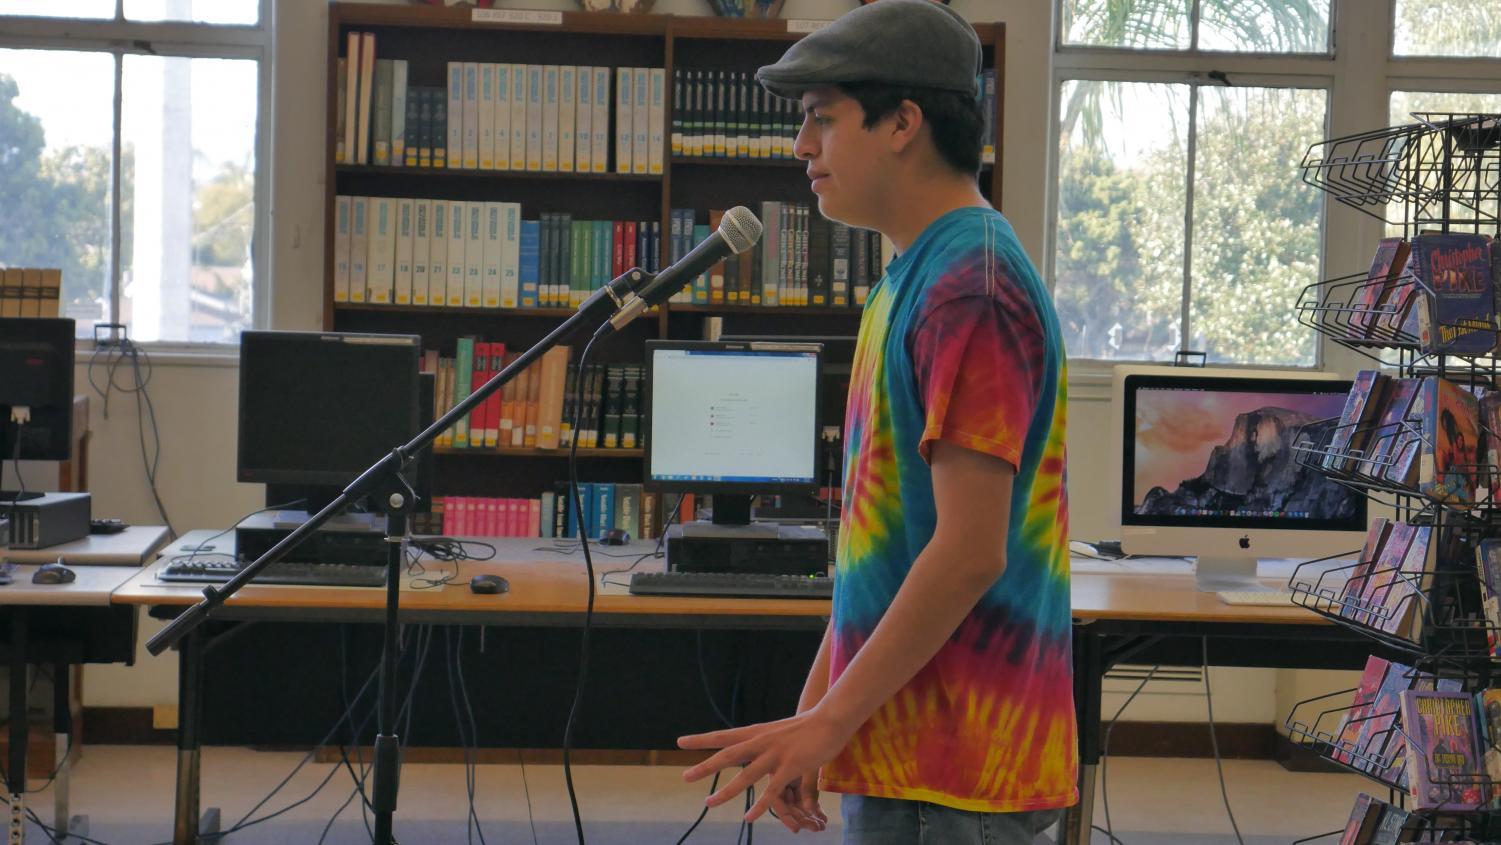 Andrew performs for the classic Poetry Slam hosted in the library.